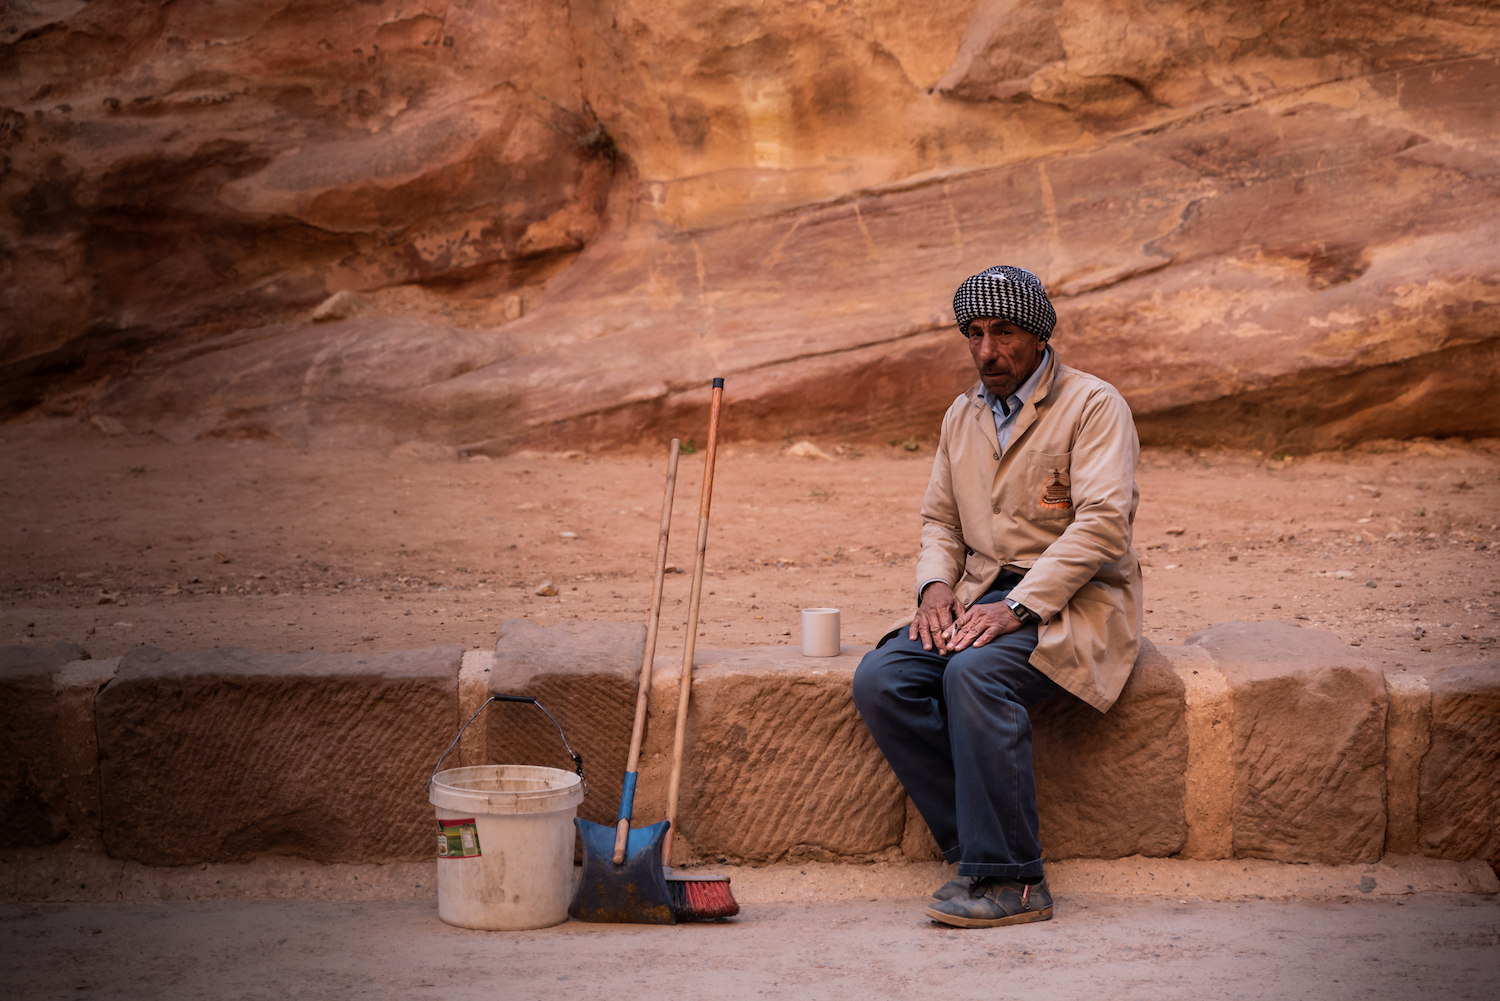 Petra groundsman stops for a smoke. - by Ben Holbrook from DriftwoodJournals.com